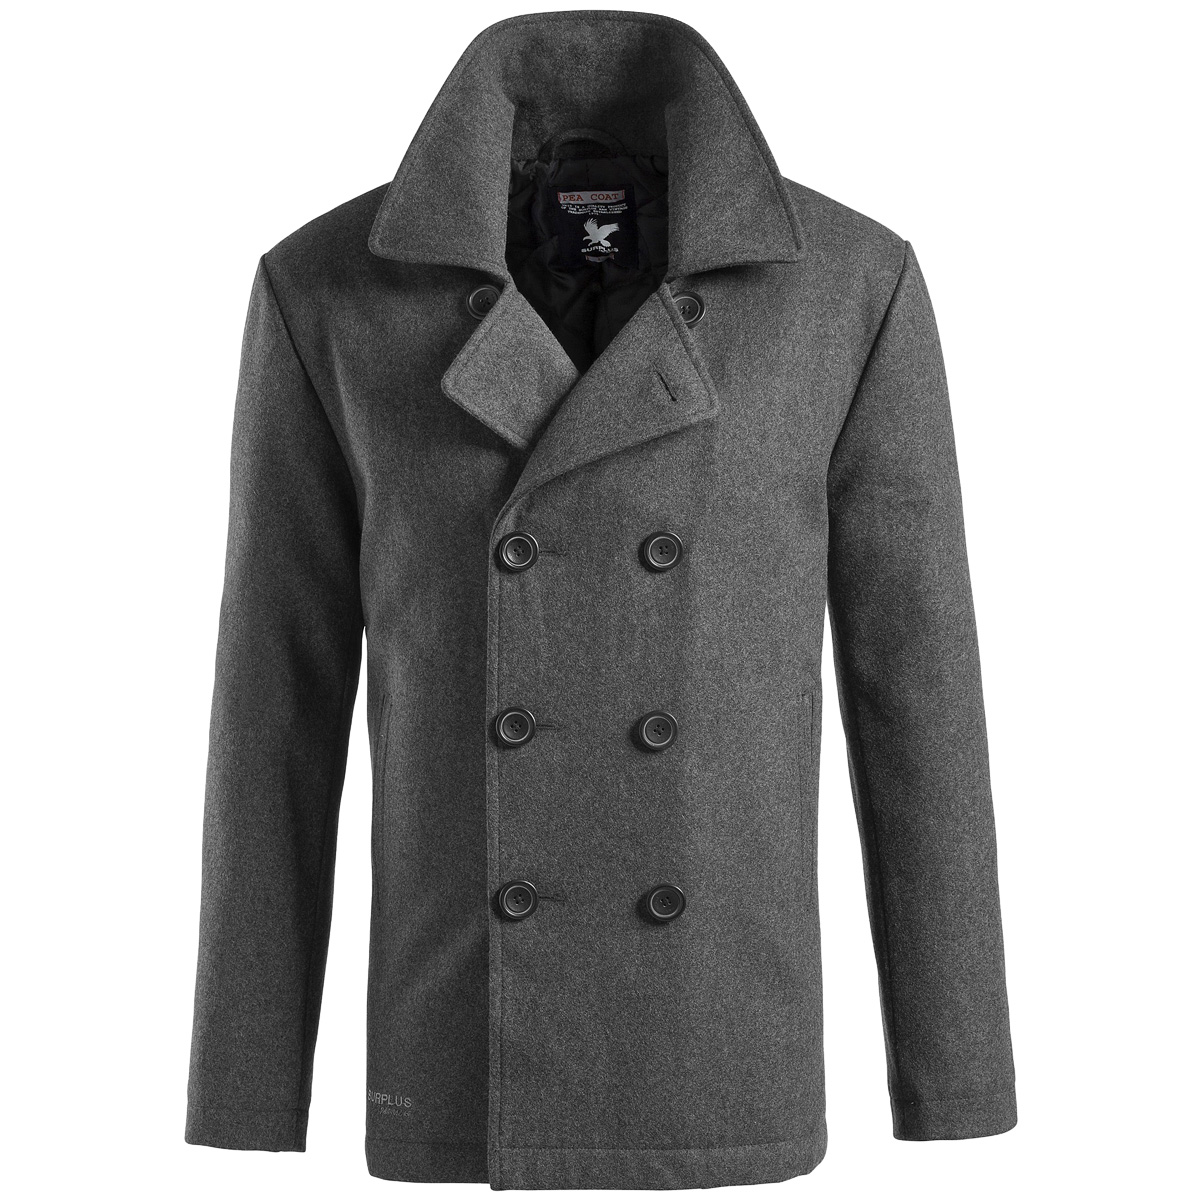 791a240c498 Sentinel Surplus Classic Navy Pea Coat Warm Mens Winter Wool Reefer Jacket  Anthracite